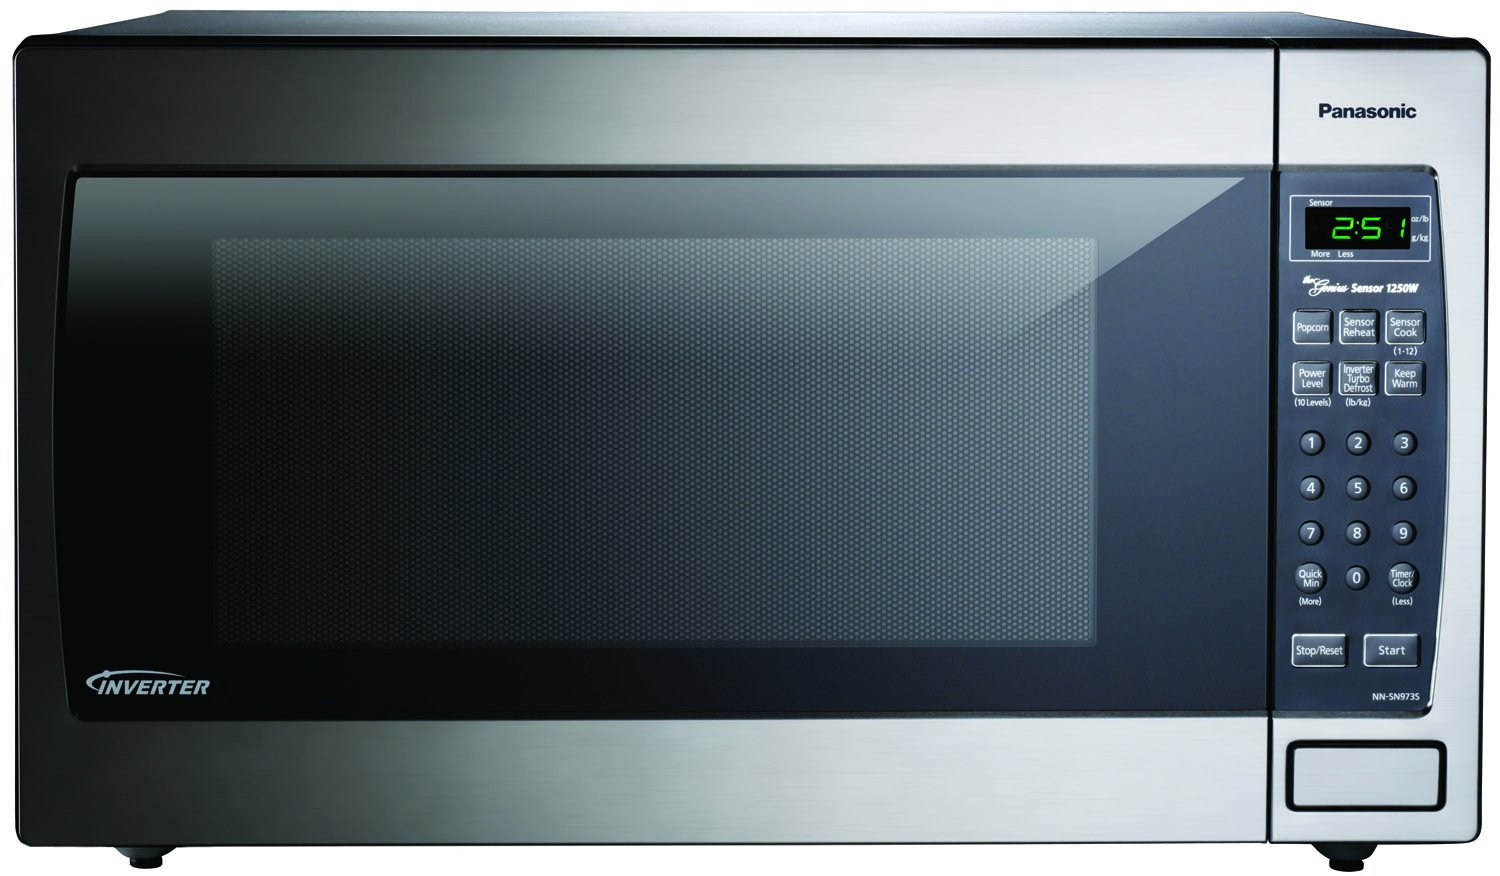 ... NN-SN643S Stainless 1200W 1.2 Cu. Ft. Countertop Microwave Oven